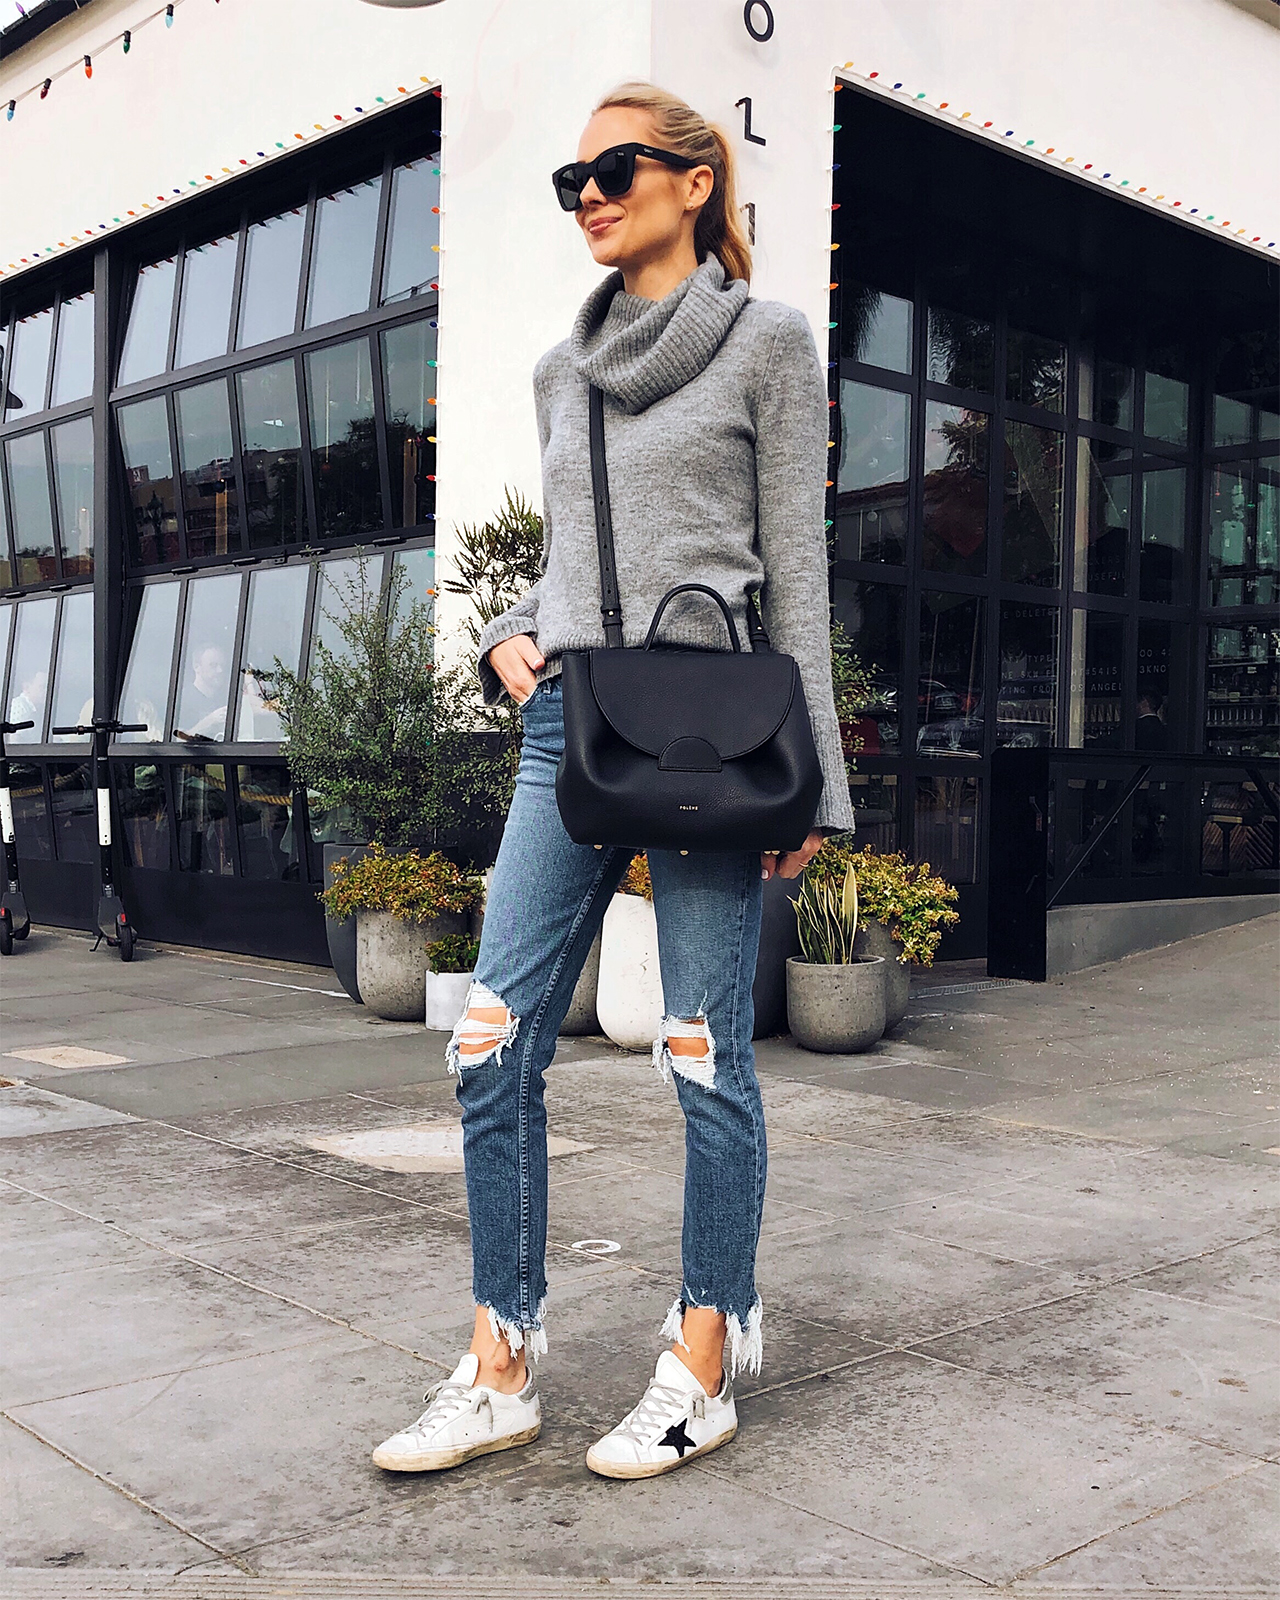 Fashion Jackson Wearing Ann Taylor Grey Turtleneck Sweater Paige Ripped Jeans Golden Goose Sneakers Polene Black Handbag